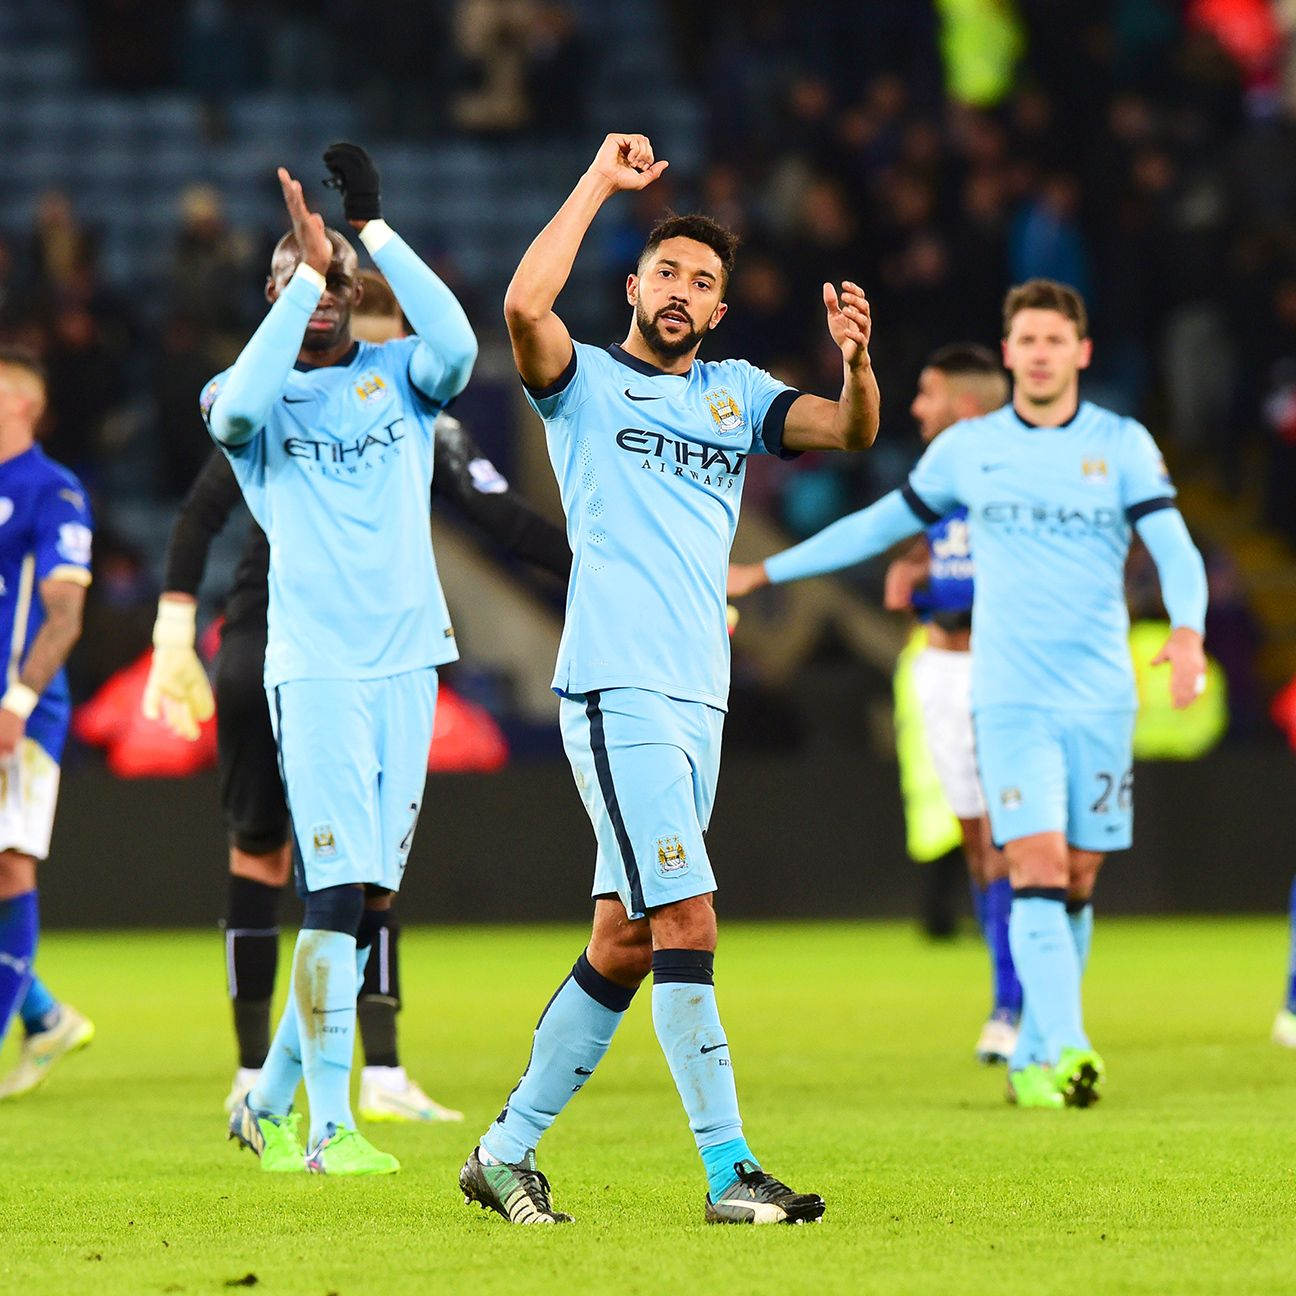 Gael Clichy and the Manchester City defence put in an assured performance in Saturday's victory.